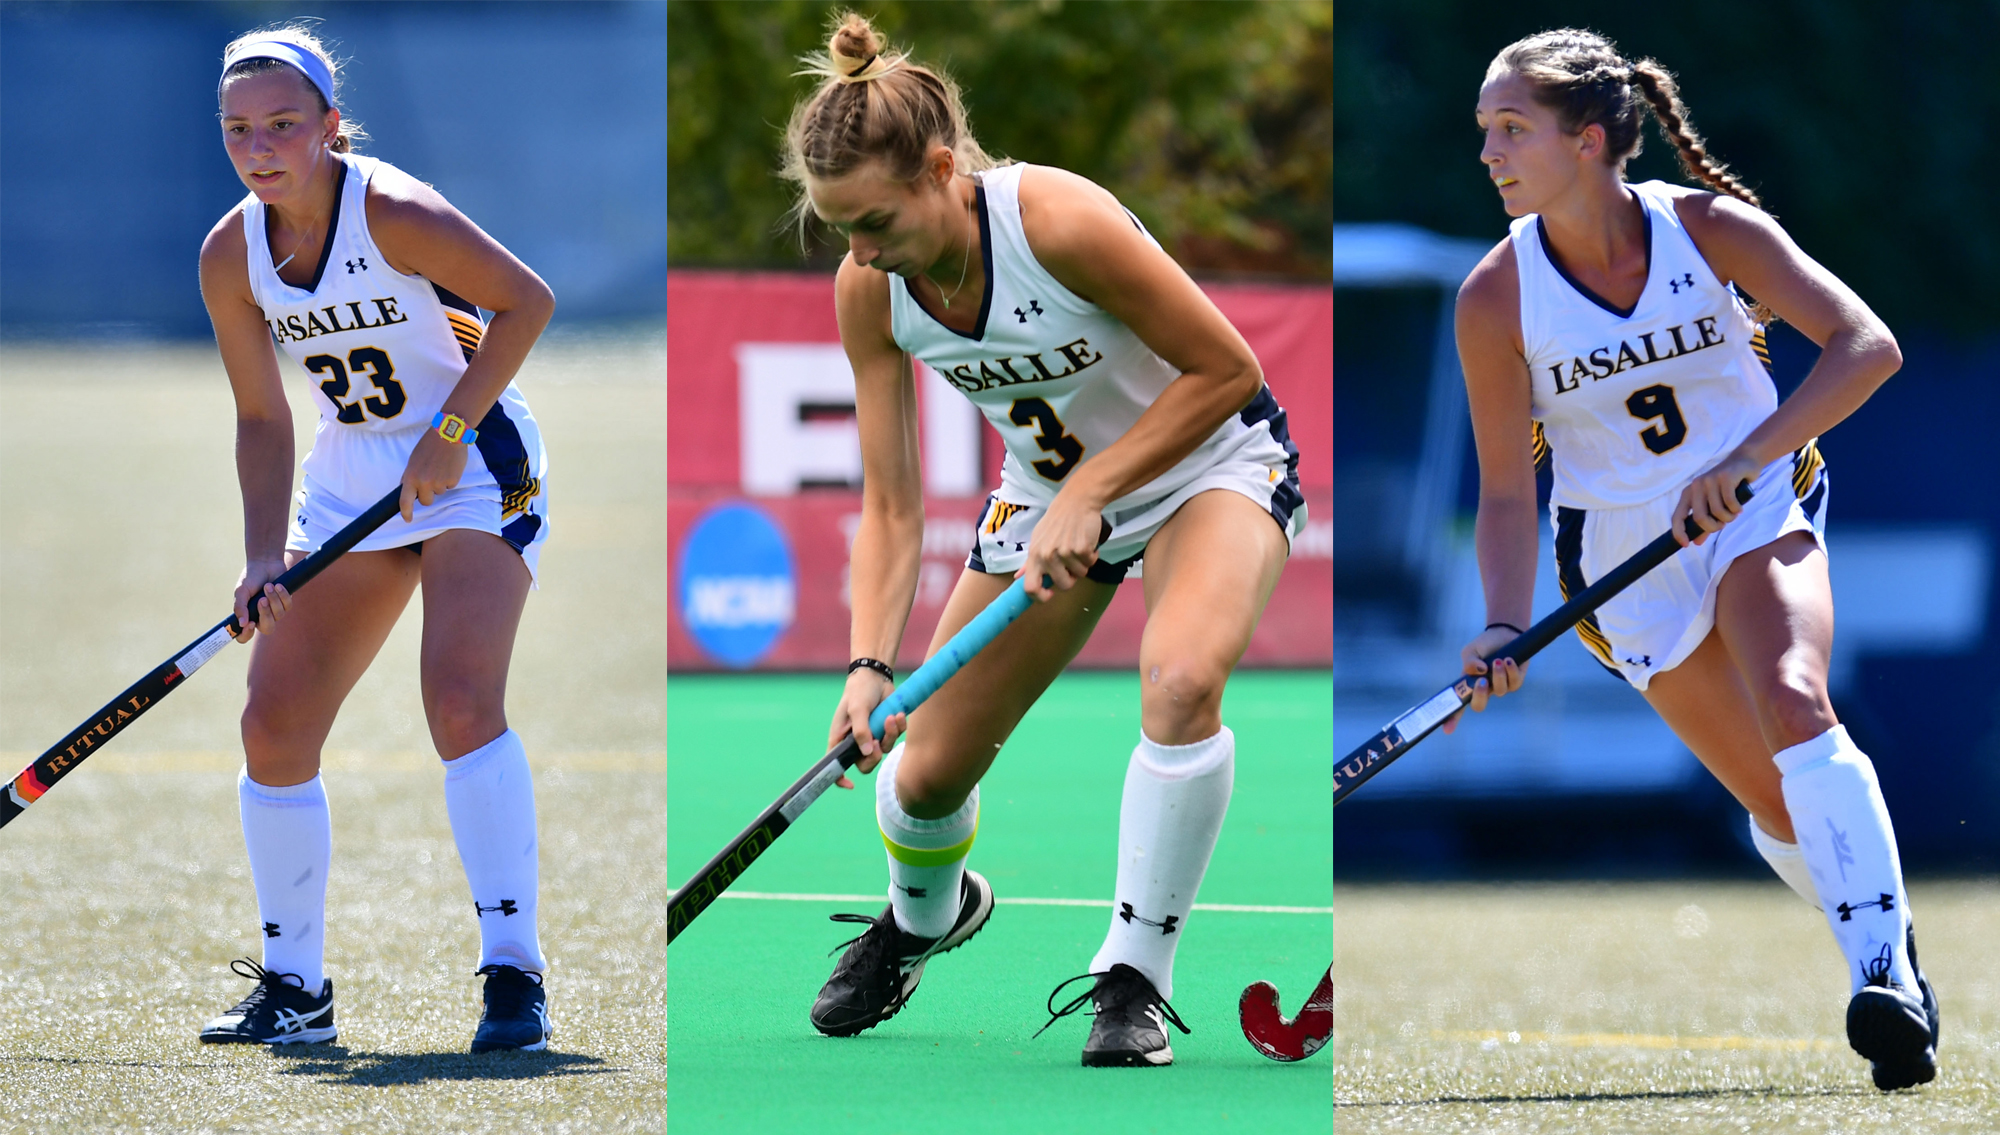 Field Hockey Announces Team Captains For Upcoming 2019 Season La